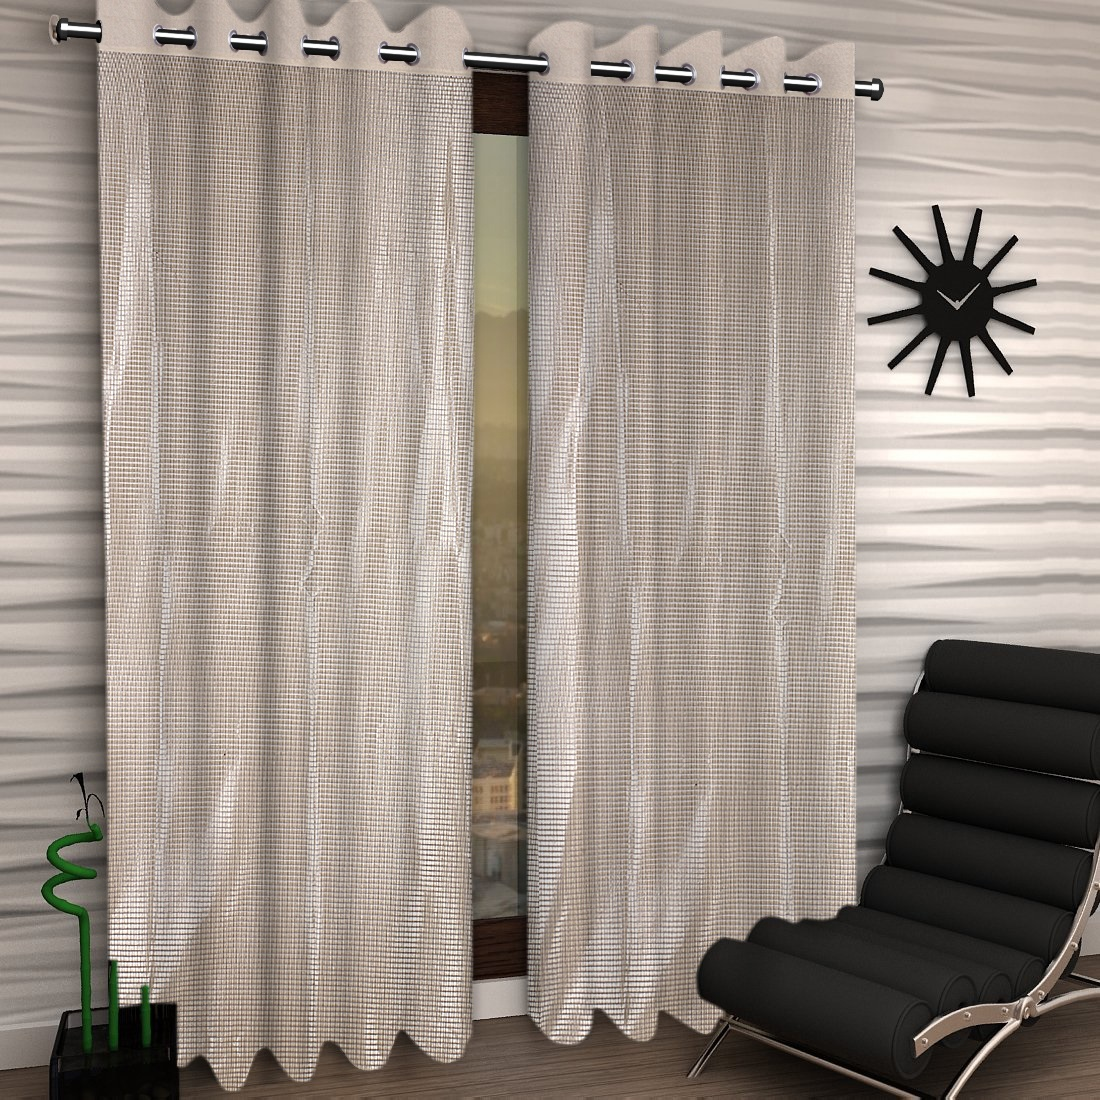 Kuber Industries Shining 2 Pieces Sheer Door Curtains Silk Look Semi Transparent Voile Grommet Elegance Curtains for Living Dining Room, Bedroom Drapes 48 x 84 Inch Long, (Cream) - CTKTC40559